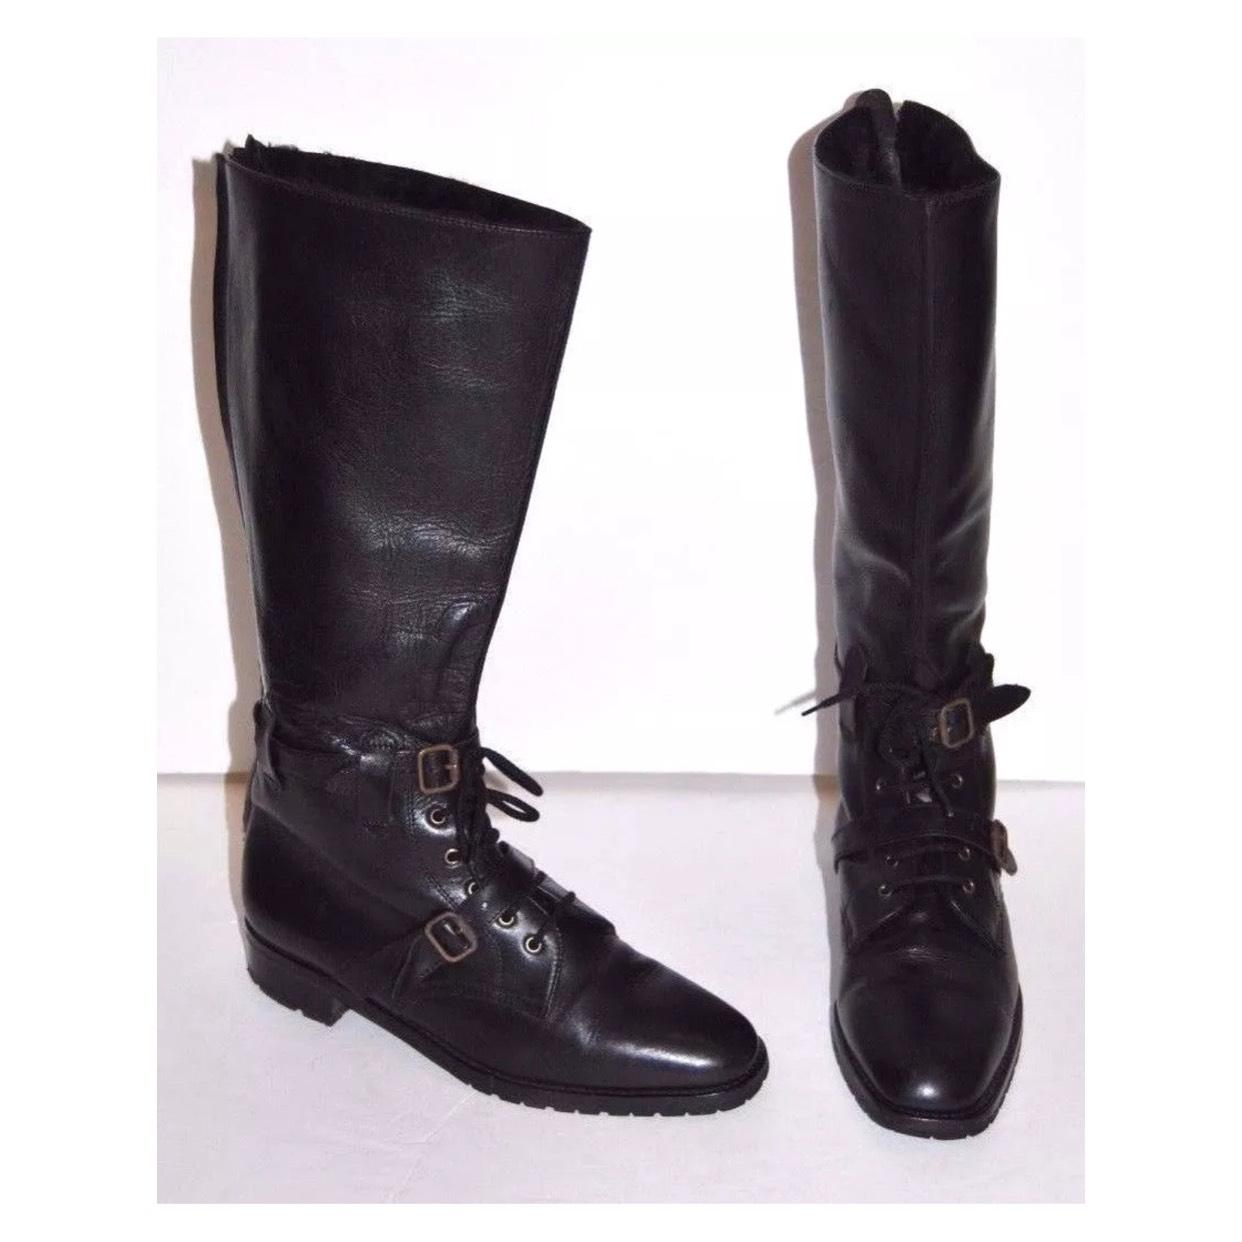 Cheapest cheap online discount store Manolo Blahnik Combat Knee-High Boots 3zvWc